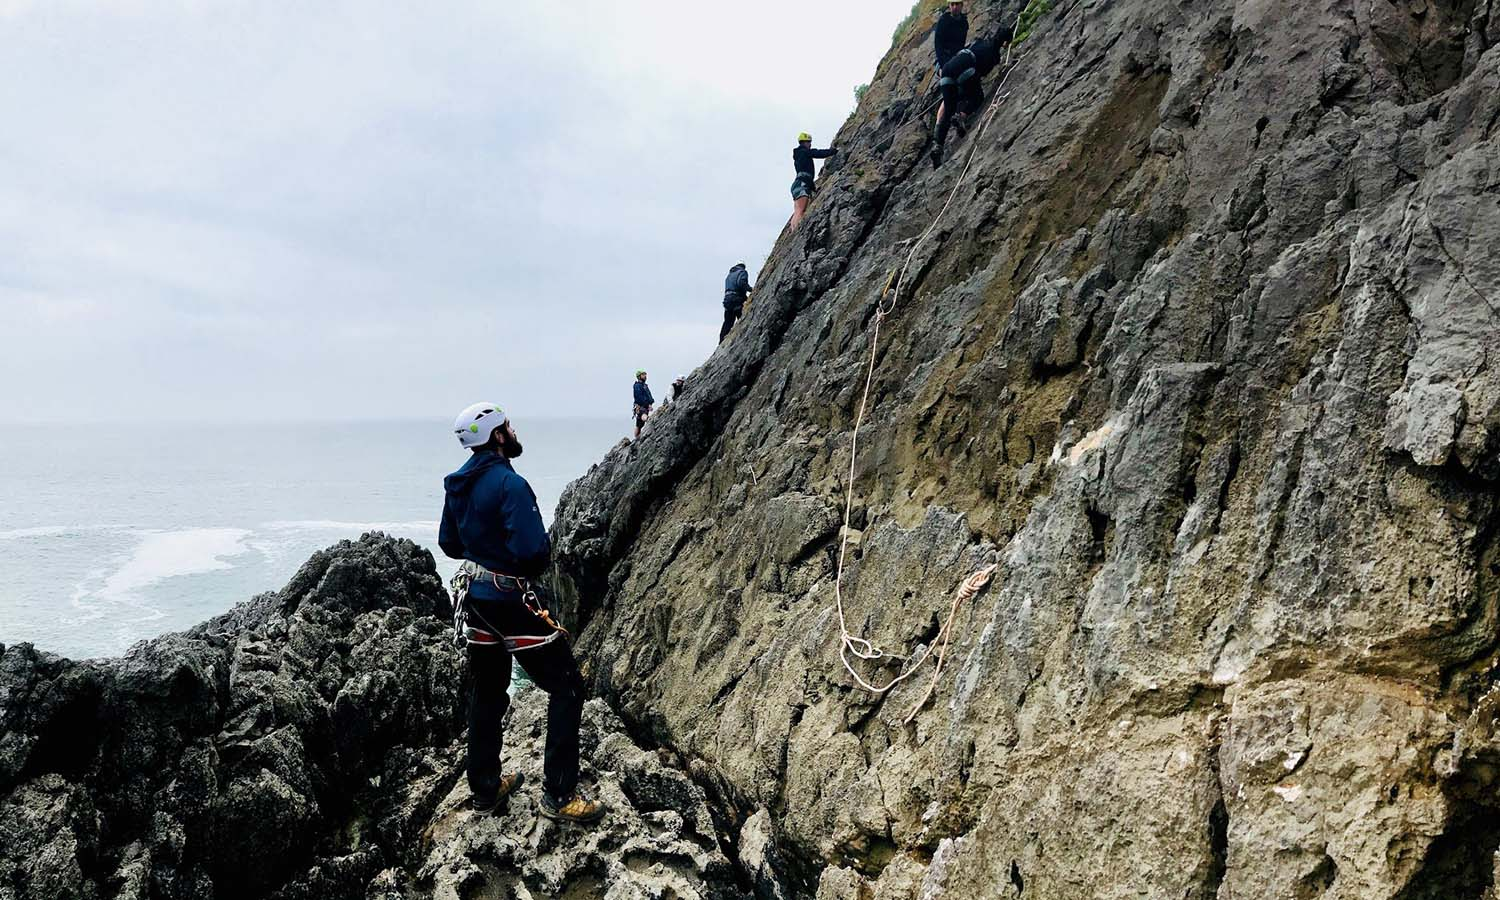 Participants of the Wales program work together to cross the ocean cliffs on their journey to Paviland Cave.